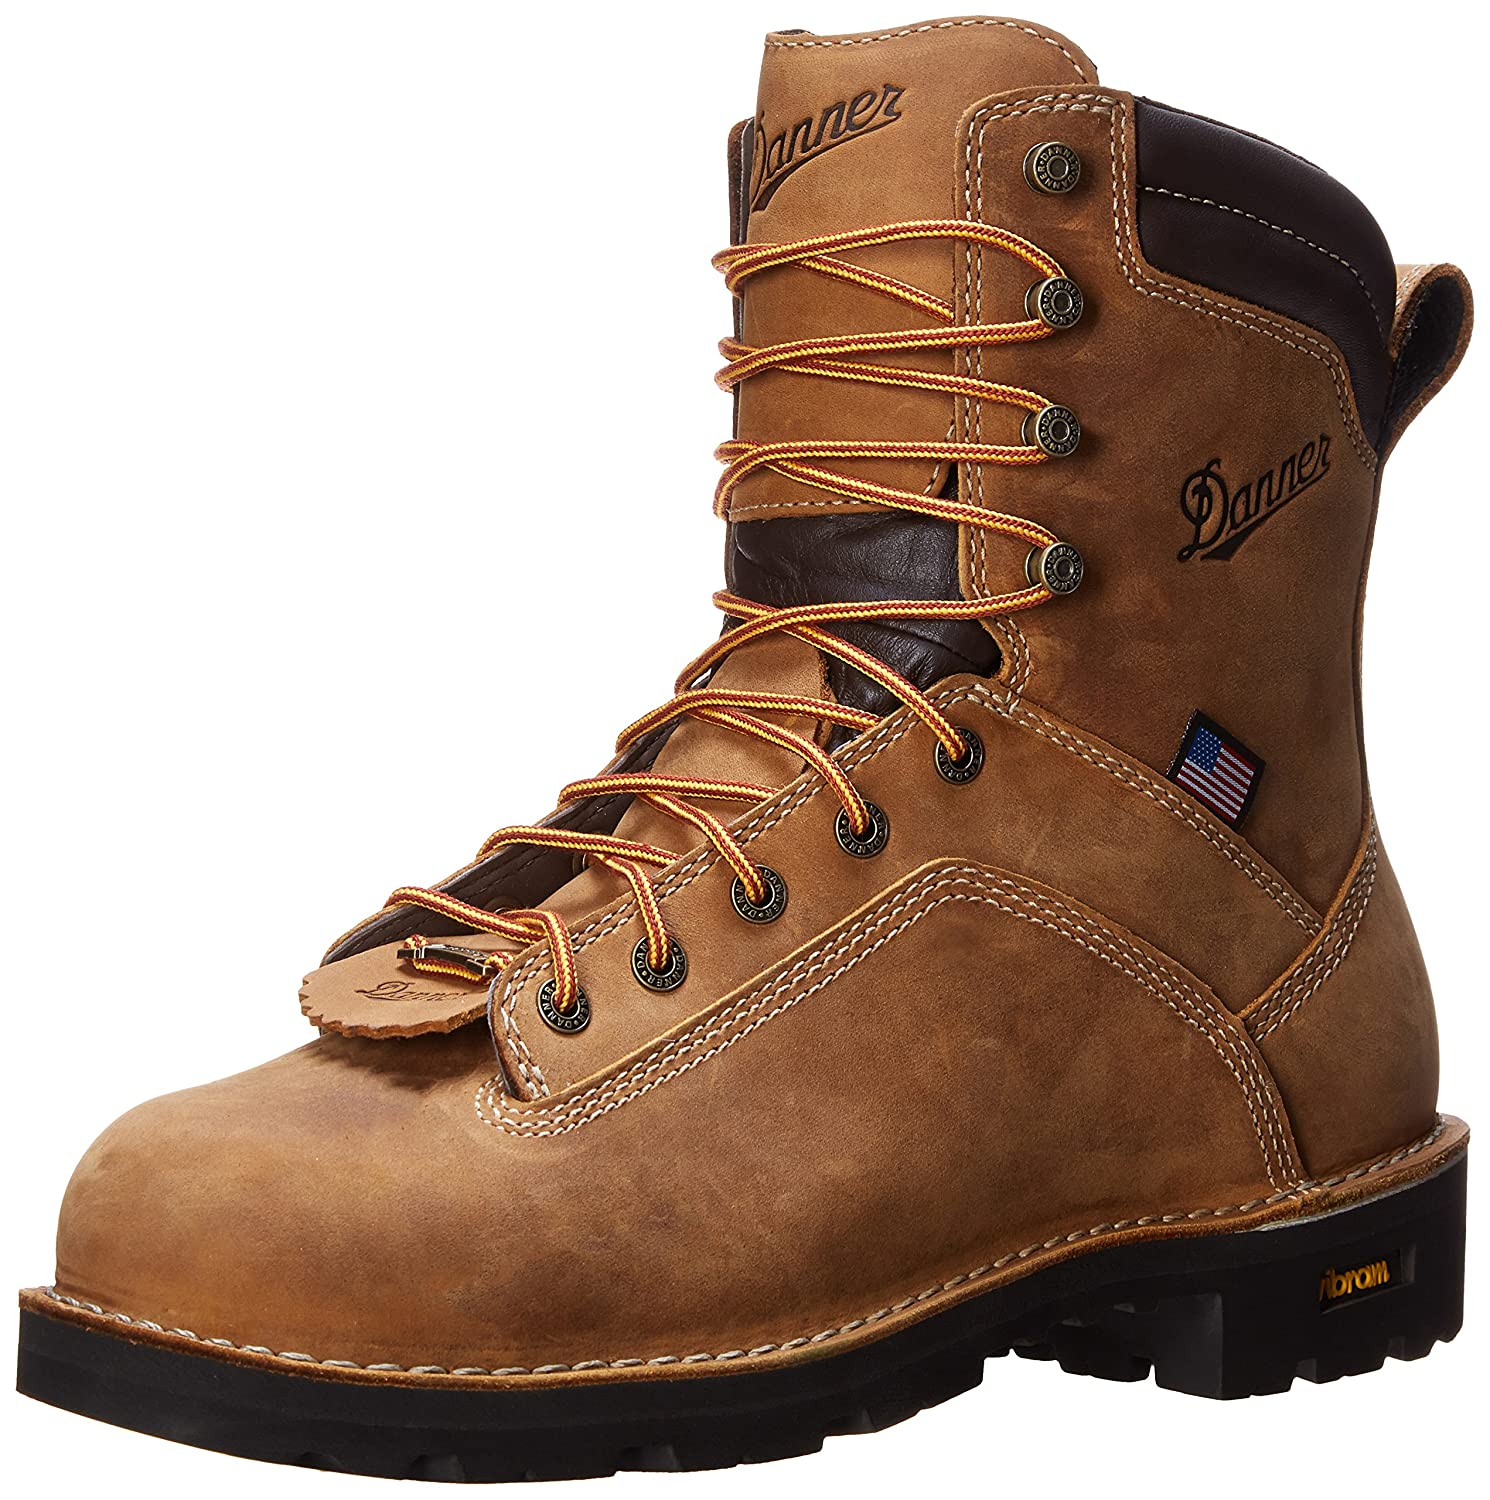 Danner メンズ B00F54X8DC 12 2E US|ブラウン(Distressed Brown) ブラウン(Distressed Brown) 12 2E US